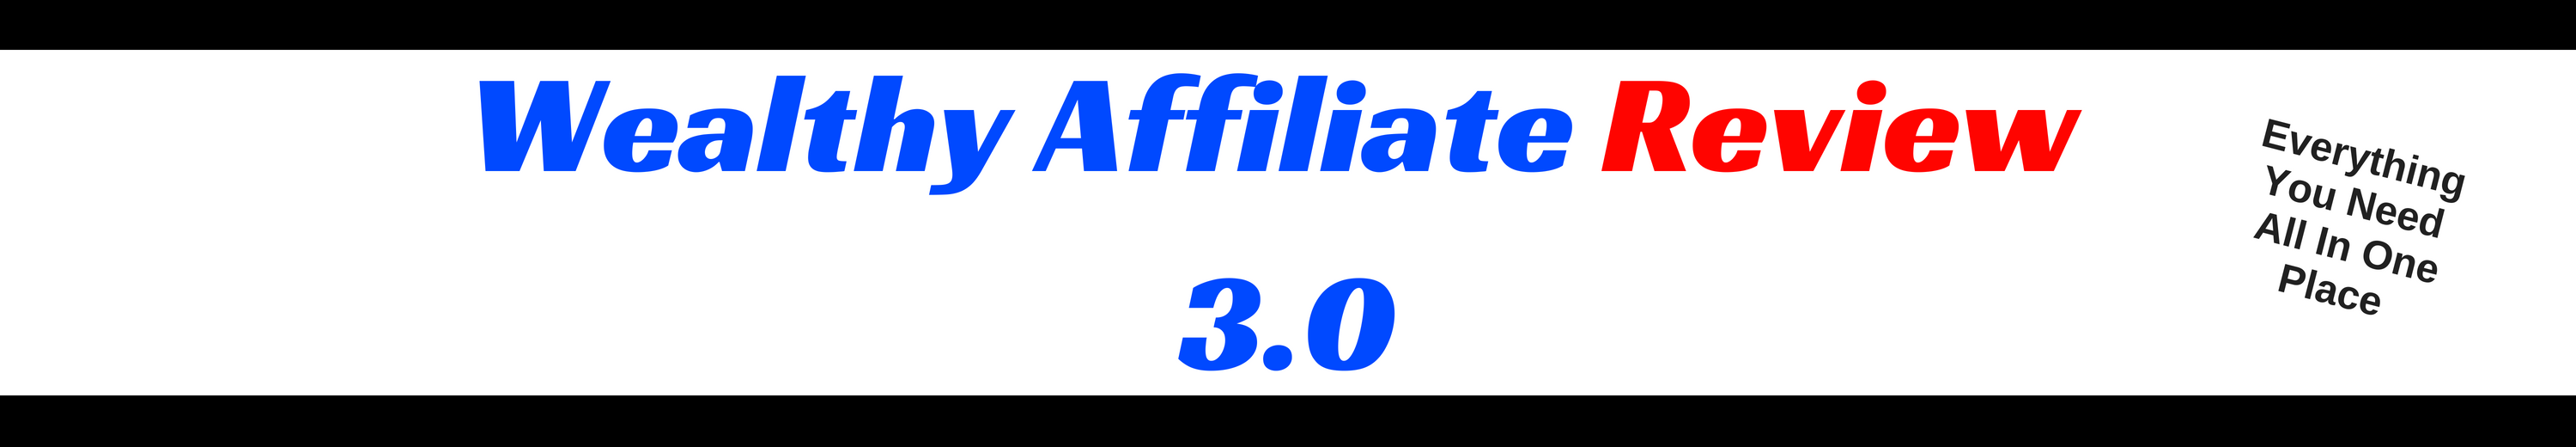 Wealthy Affiliate Review 3.0 | Everything you ever need in one place